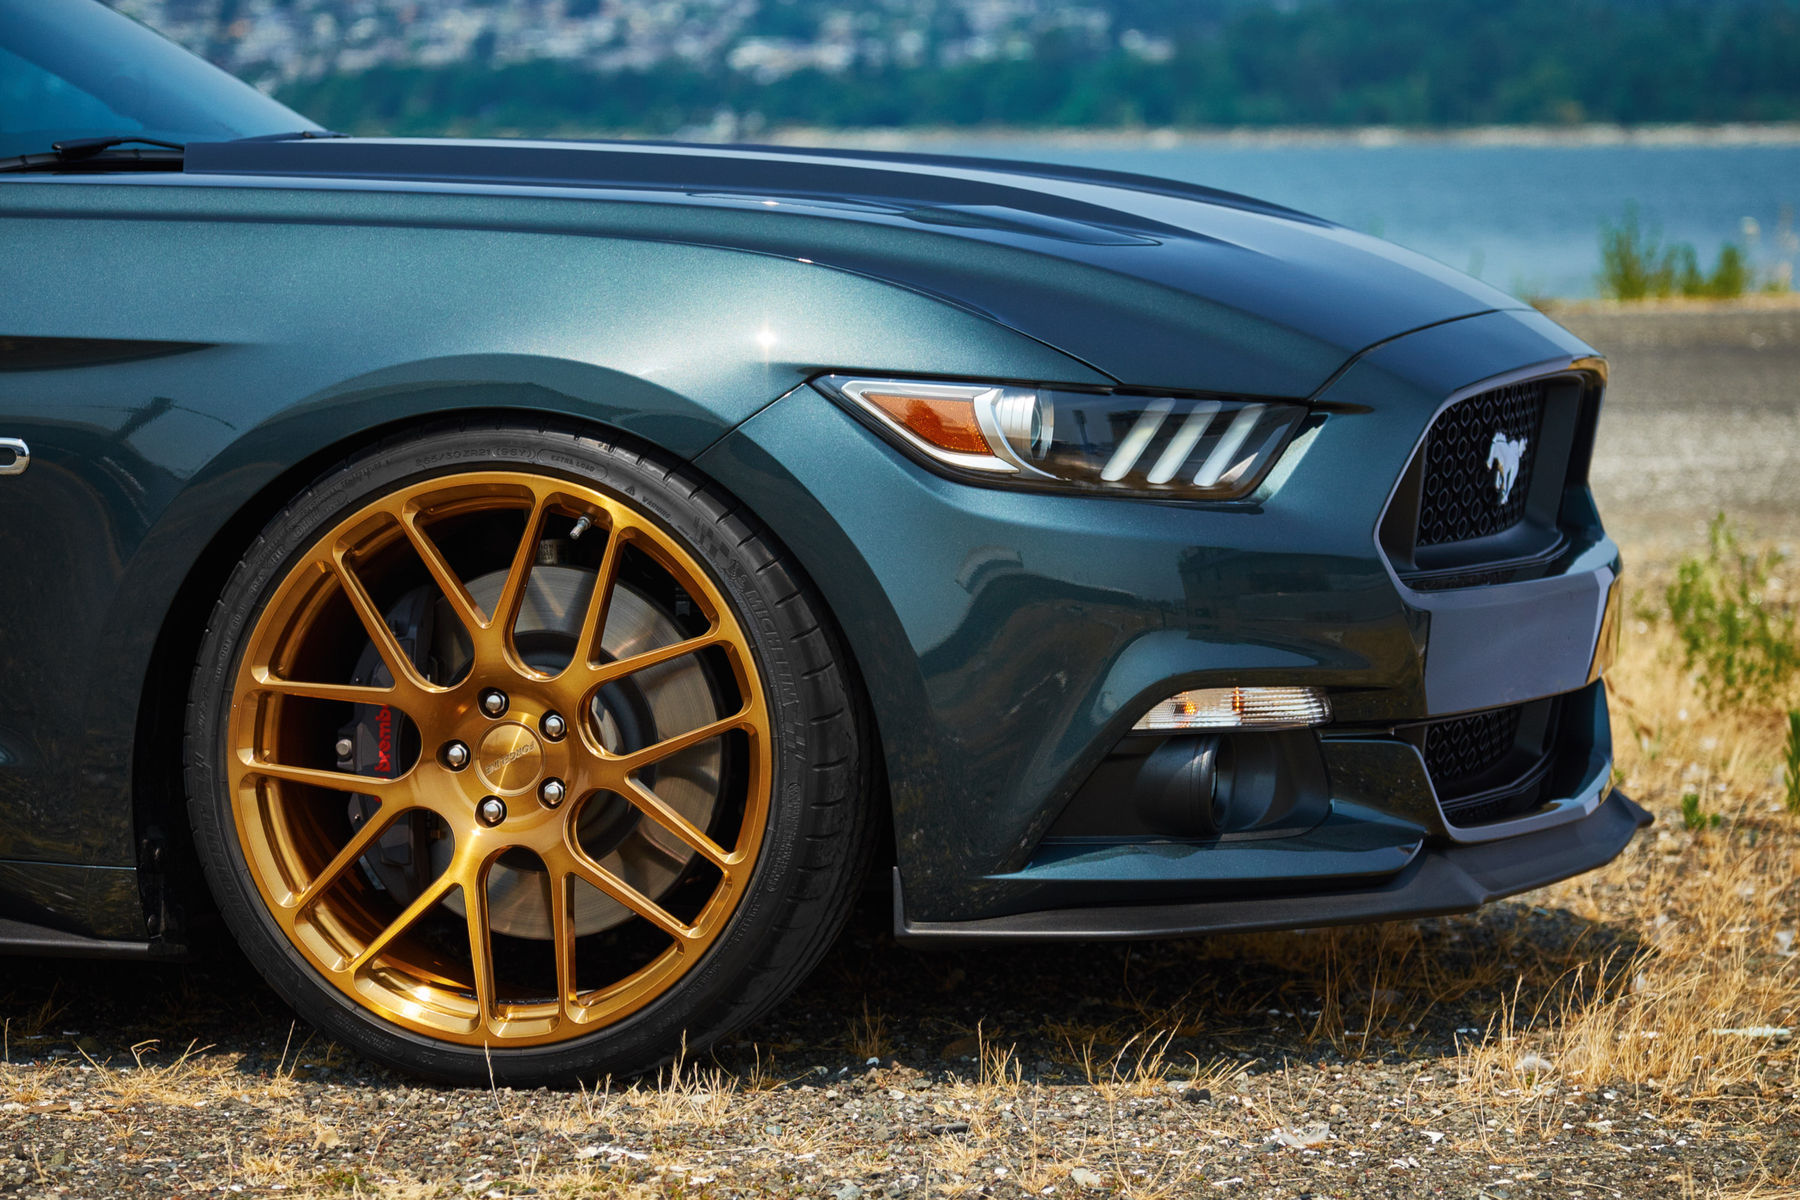 2015 Ford Mustang | H&R Springs Mustang on Forgeline SE1 Wheels - Passenger Wheel